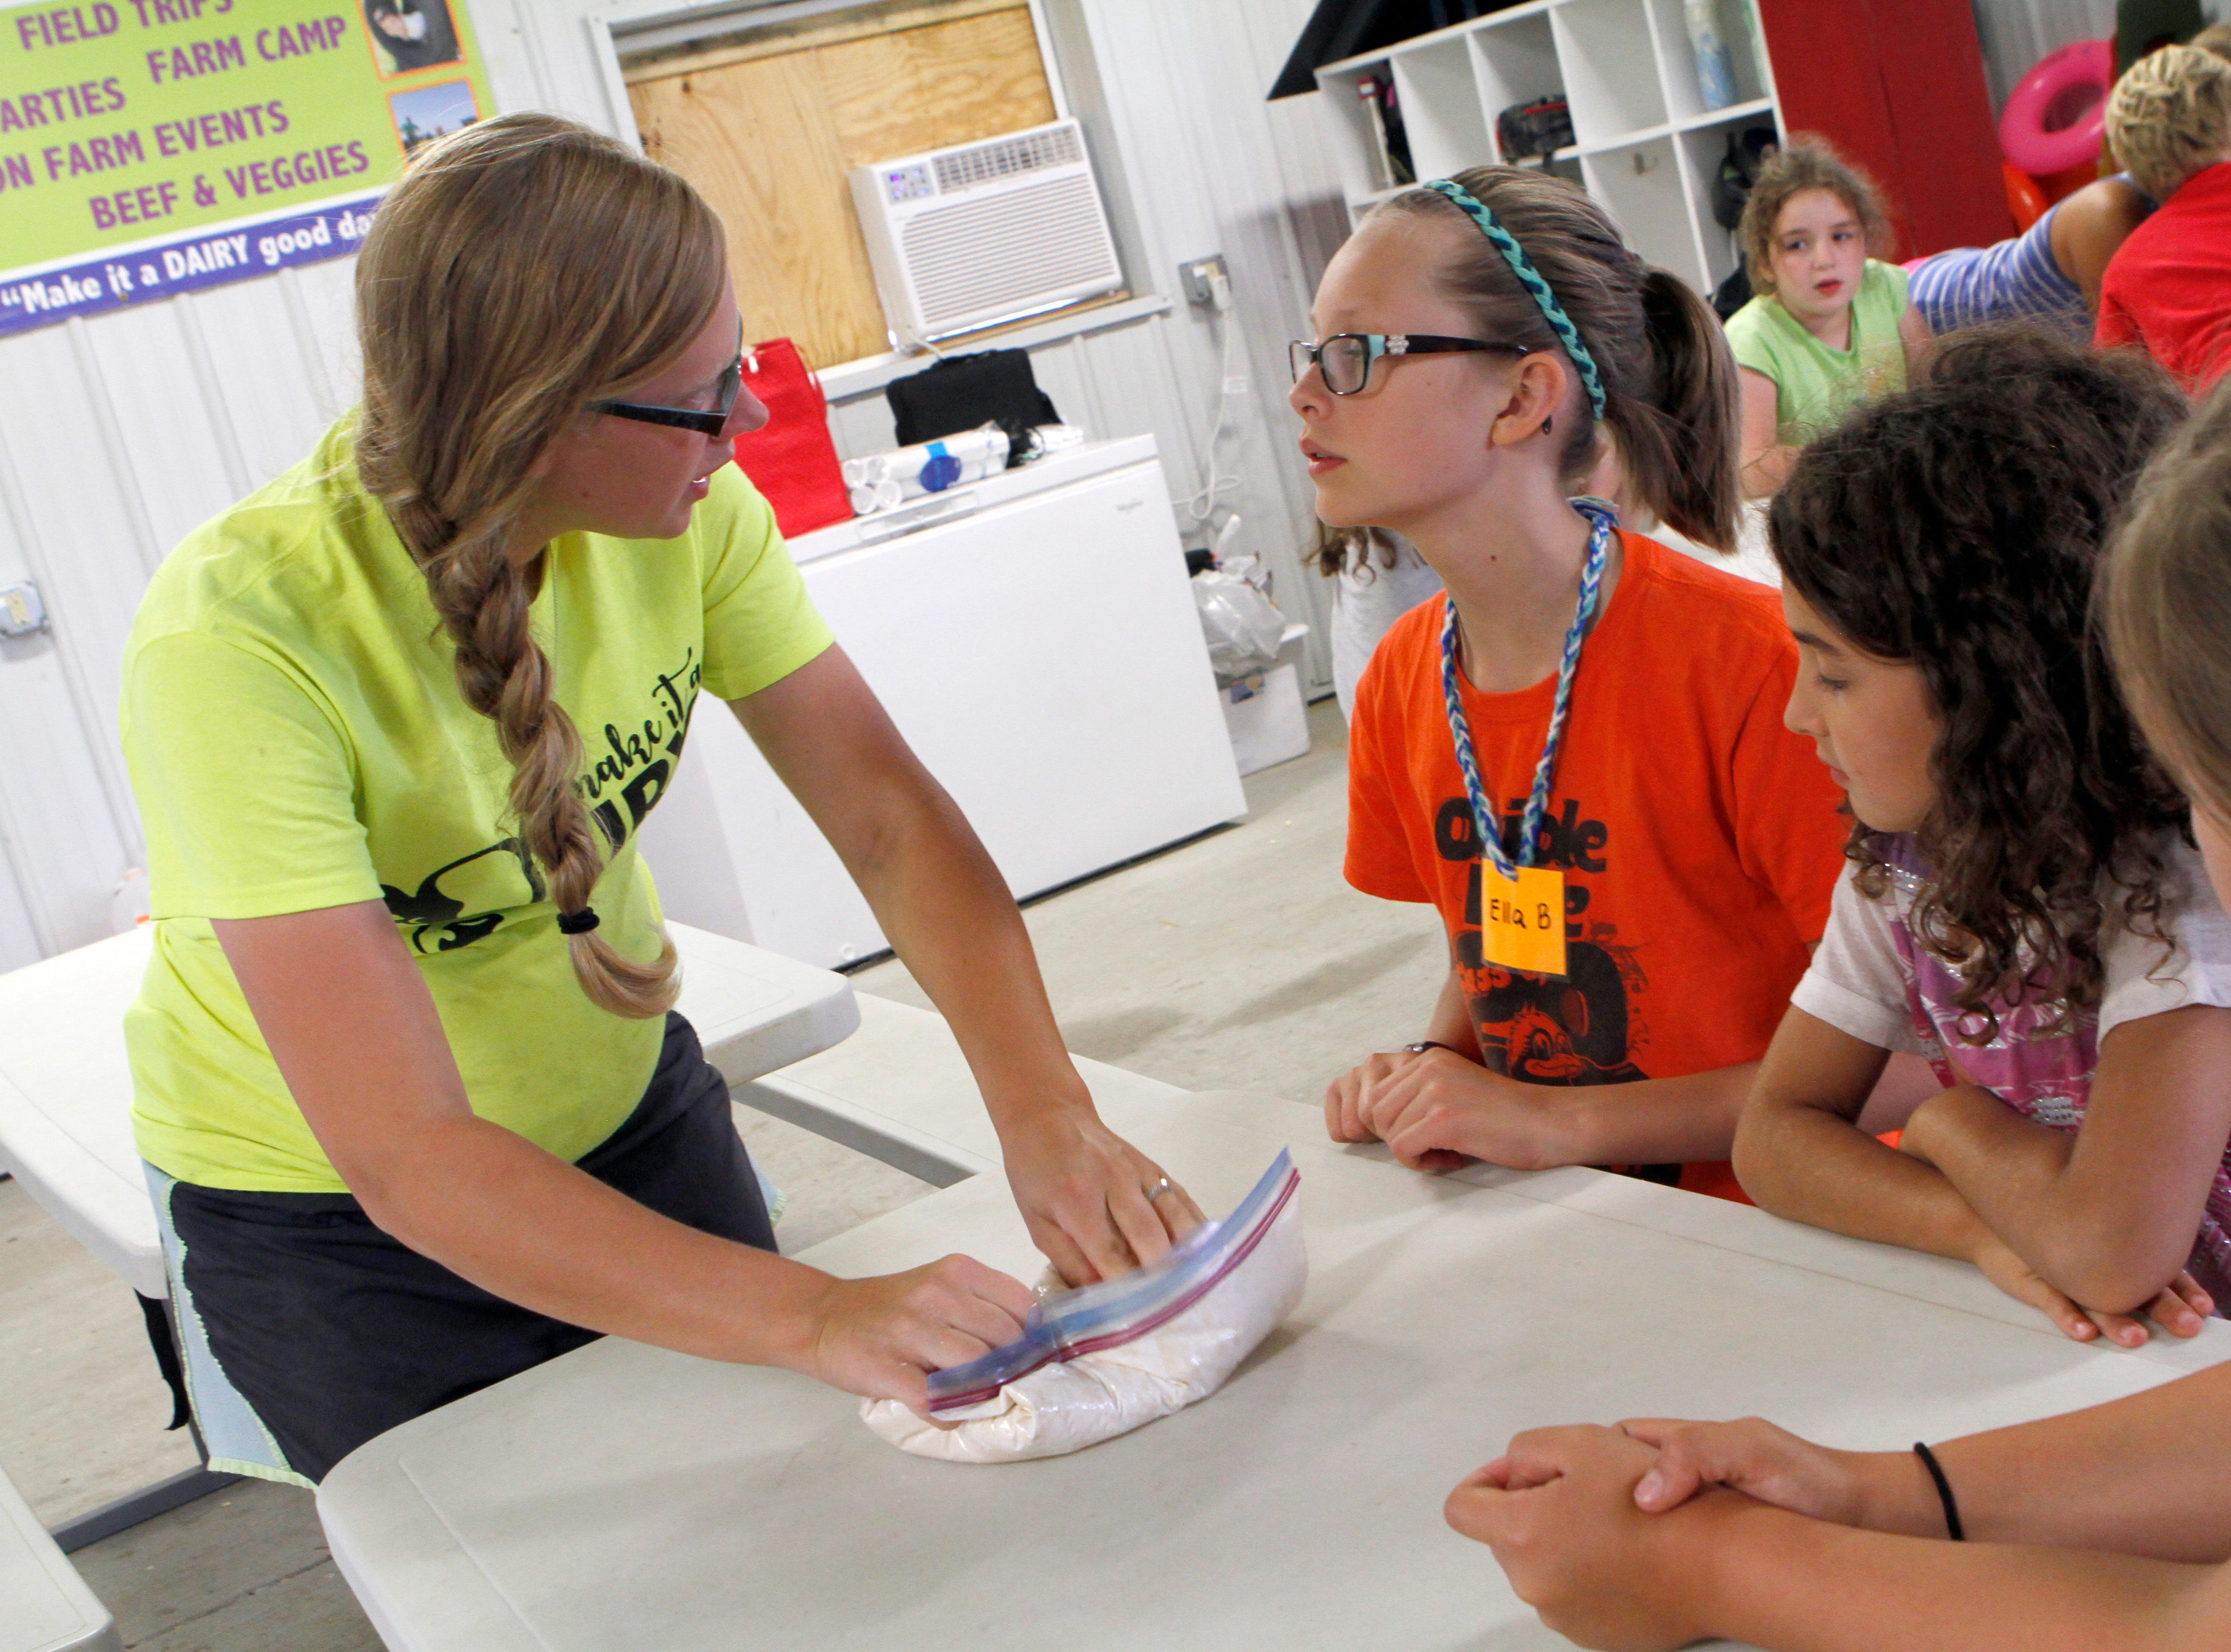 Jacki Moegenburg, of Roden Barnyard Adventures, LLC, kneads dough for pretzels during a summer farm camp on Aug. 9.